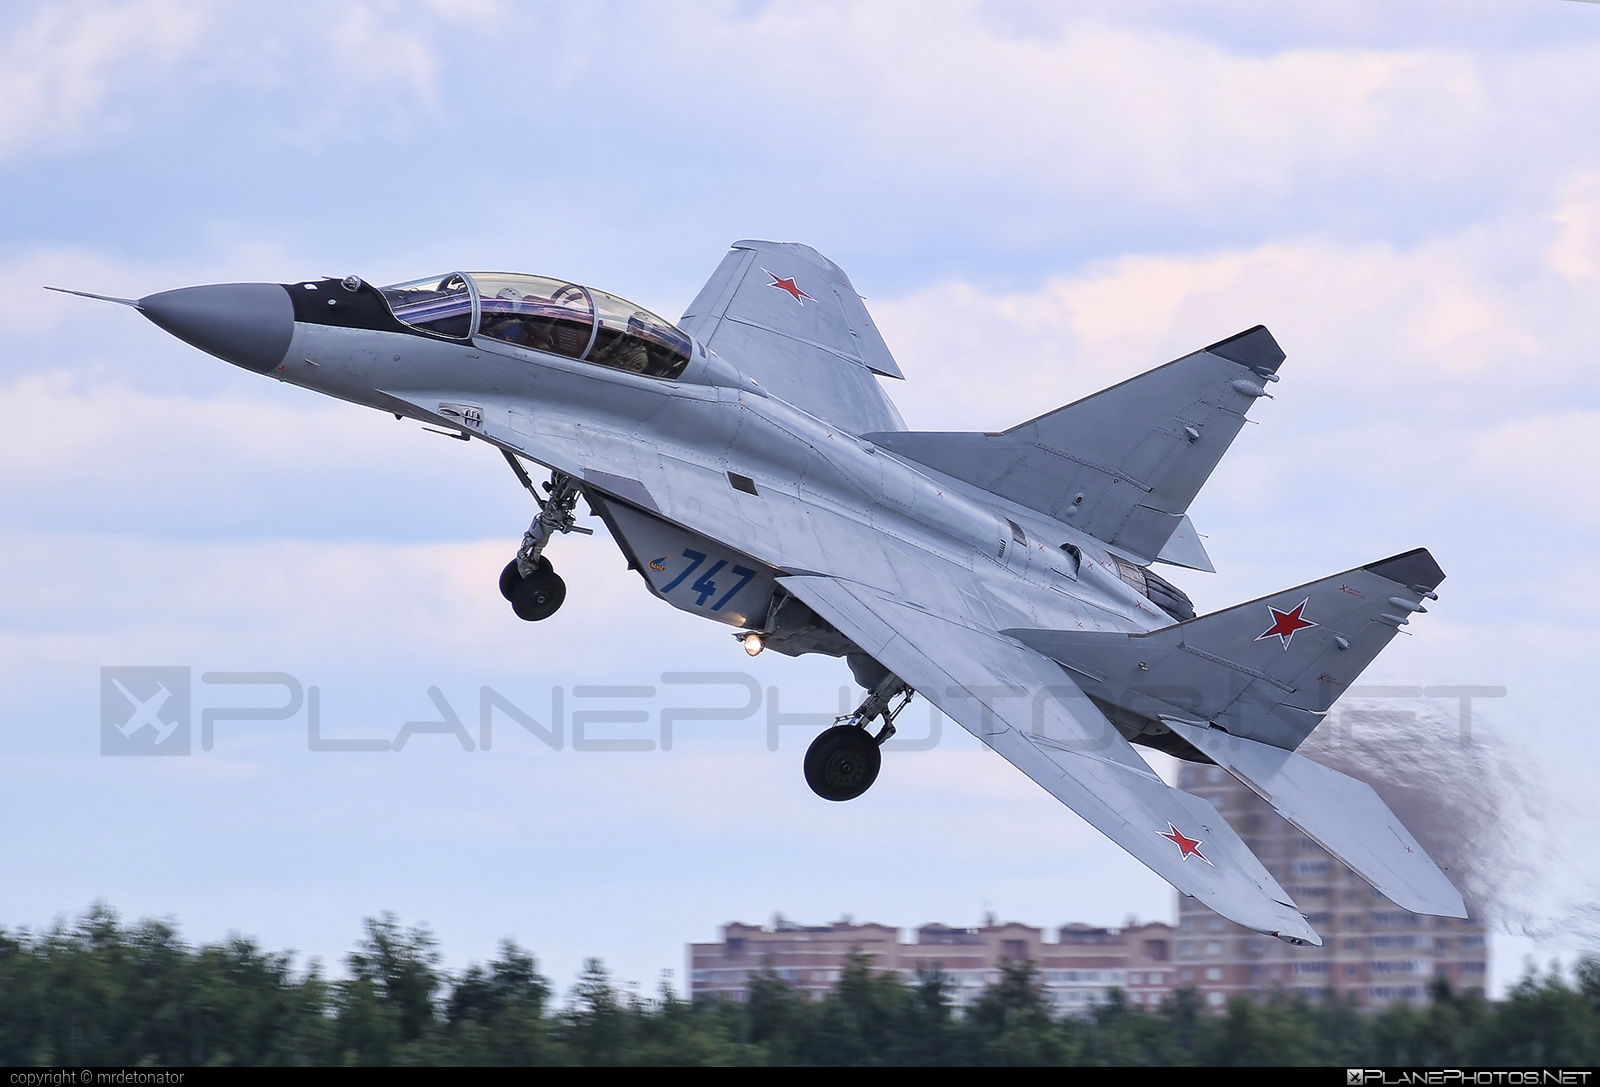 Mikoyan-Gurevich MiG-29M2 - 747 operated by RSK MiG #mig #mig29 #mig29m2 #mikoyangurevich